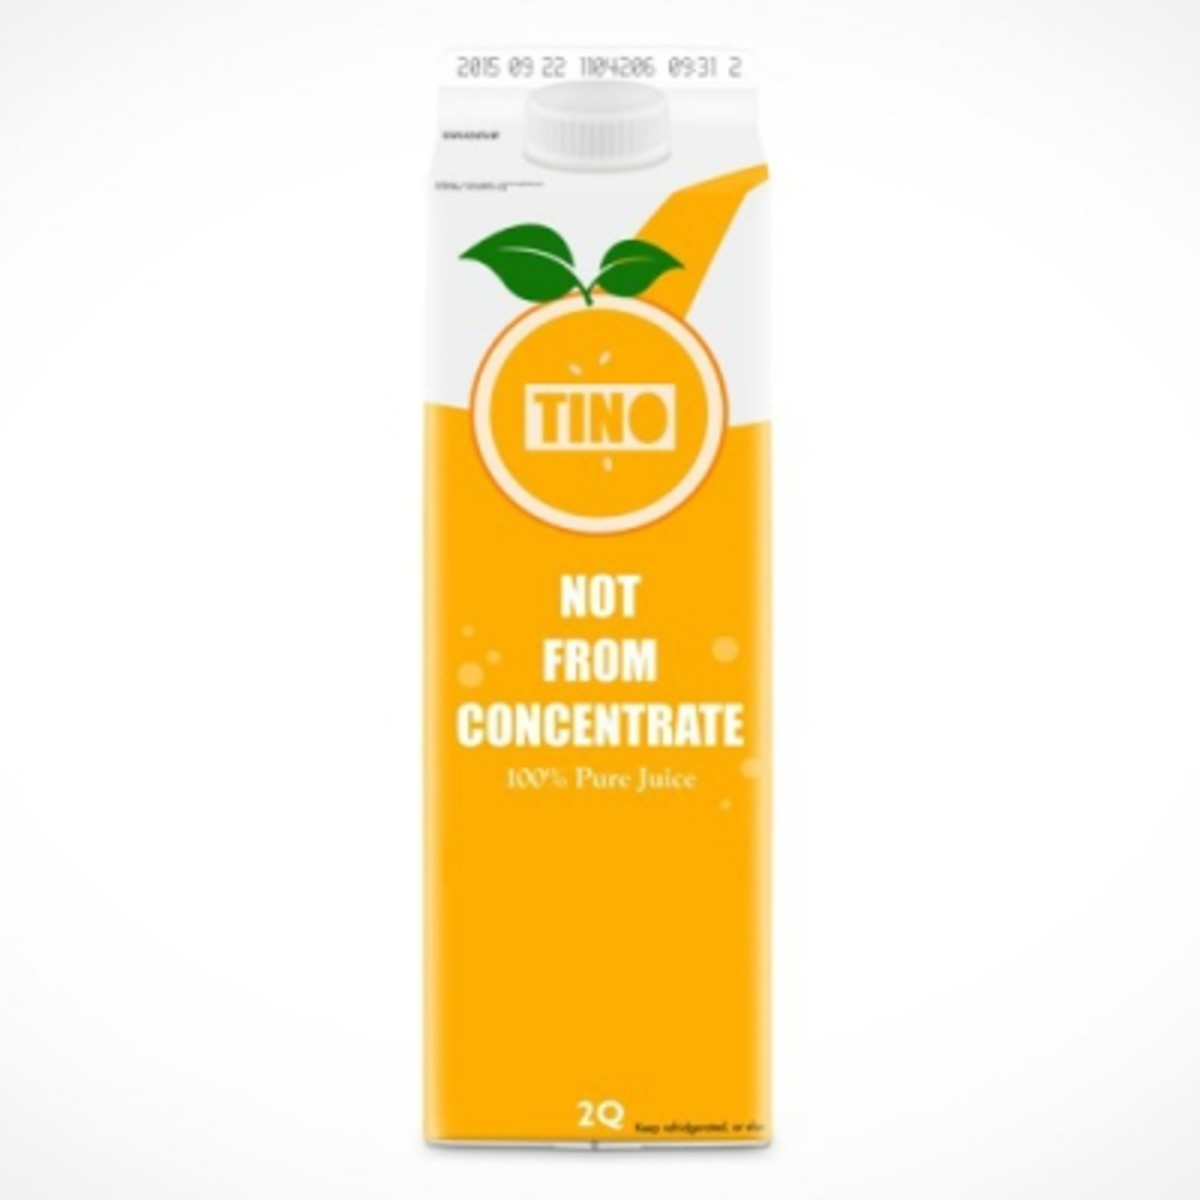 tino-not-from-concentrate.jpg